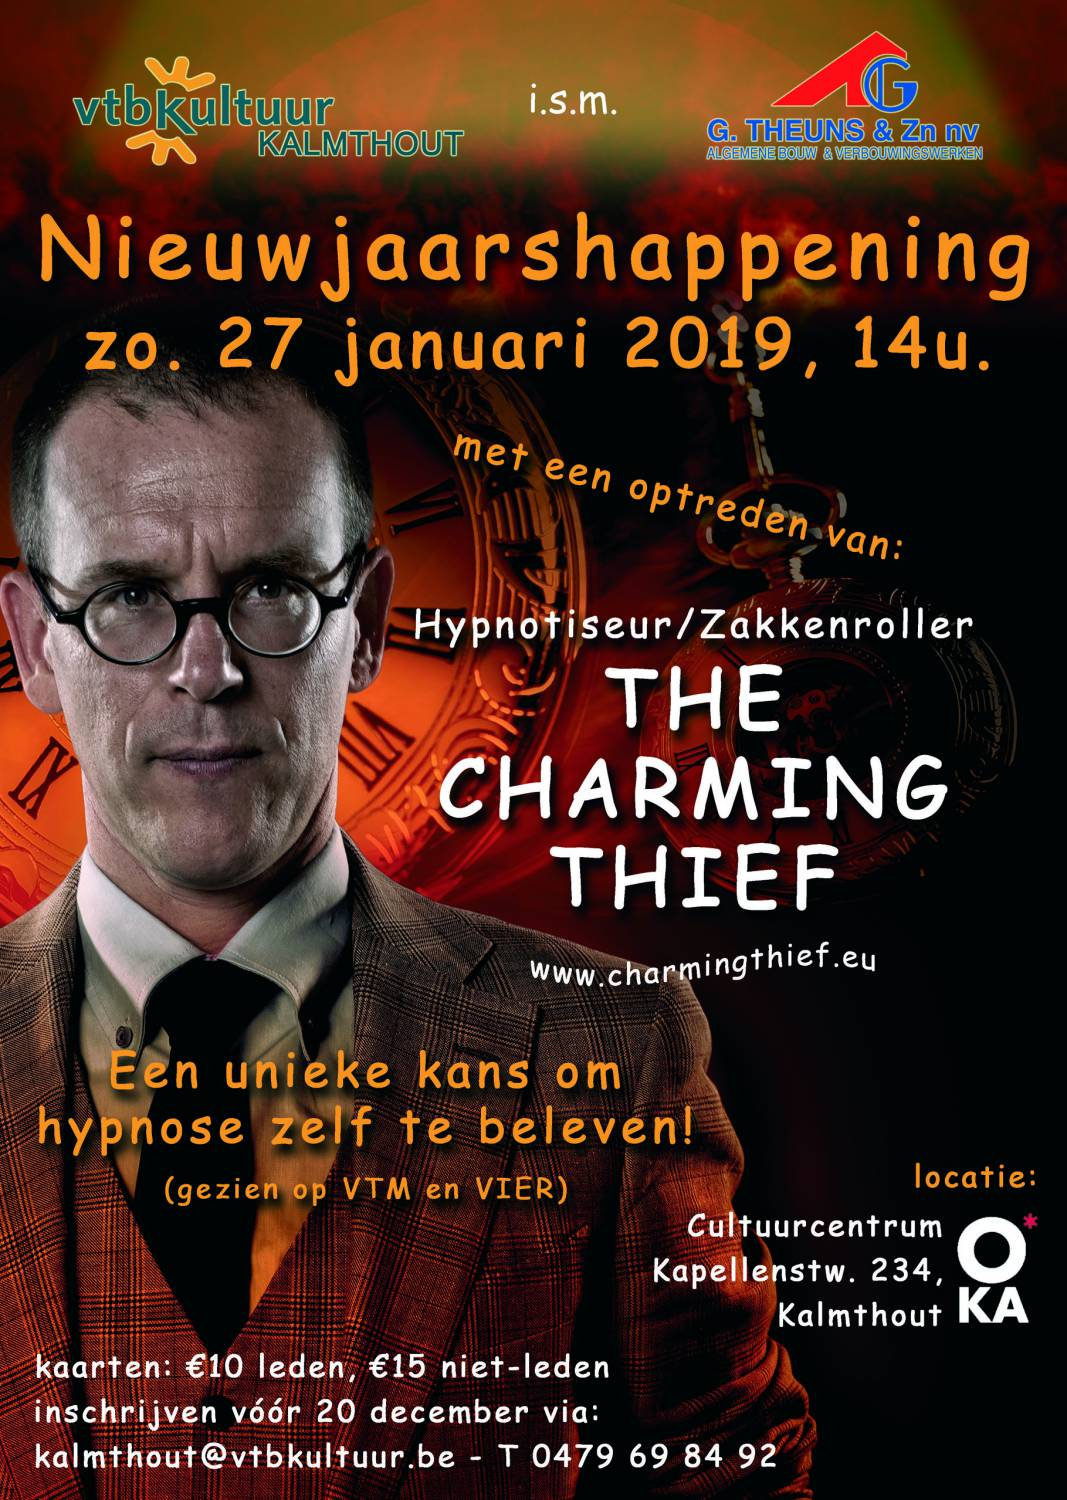 Nieuwjaarshappening : THE CHARMING THIEF